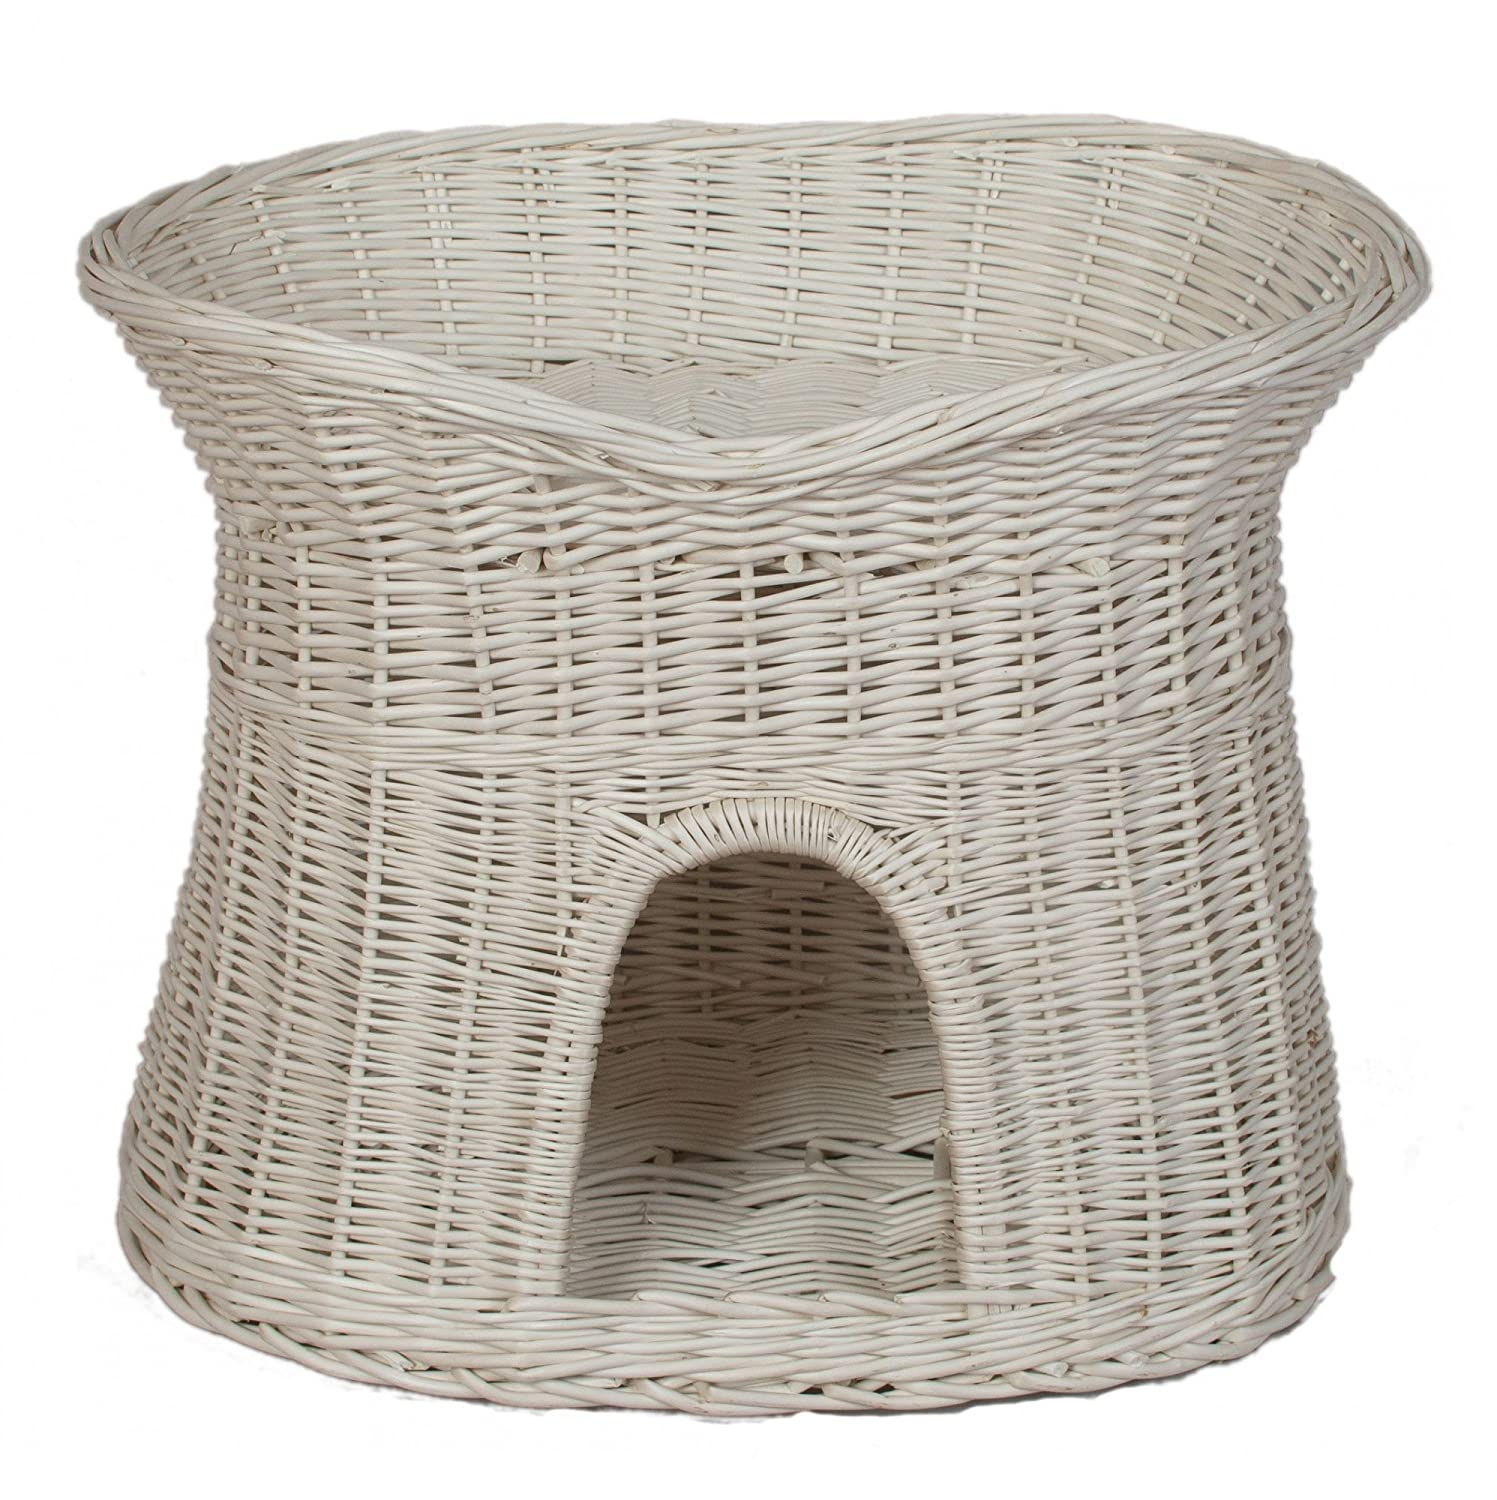 Without cushions L (61x42x48 cm) without cushions L (61x42x48 cm) Floranica 2 Sizes (L o XL) Wicker Cat Tower Two Tier Bed Basket House + cushions, organic willow product, made in the EU, Size L (61x42x48 cm), Cushion color without cushions